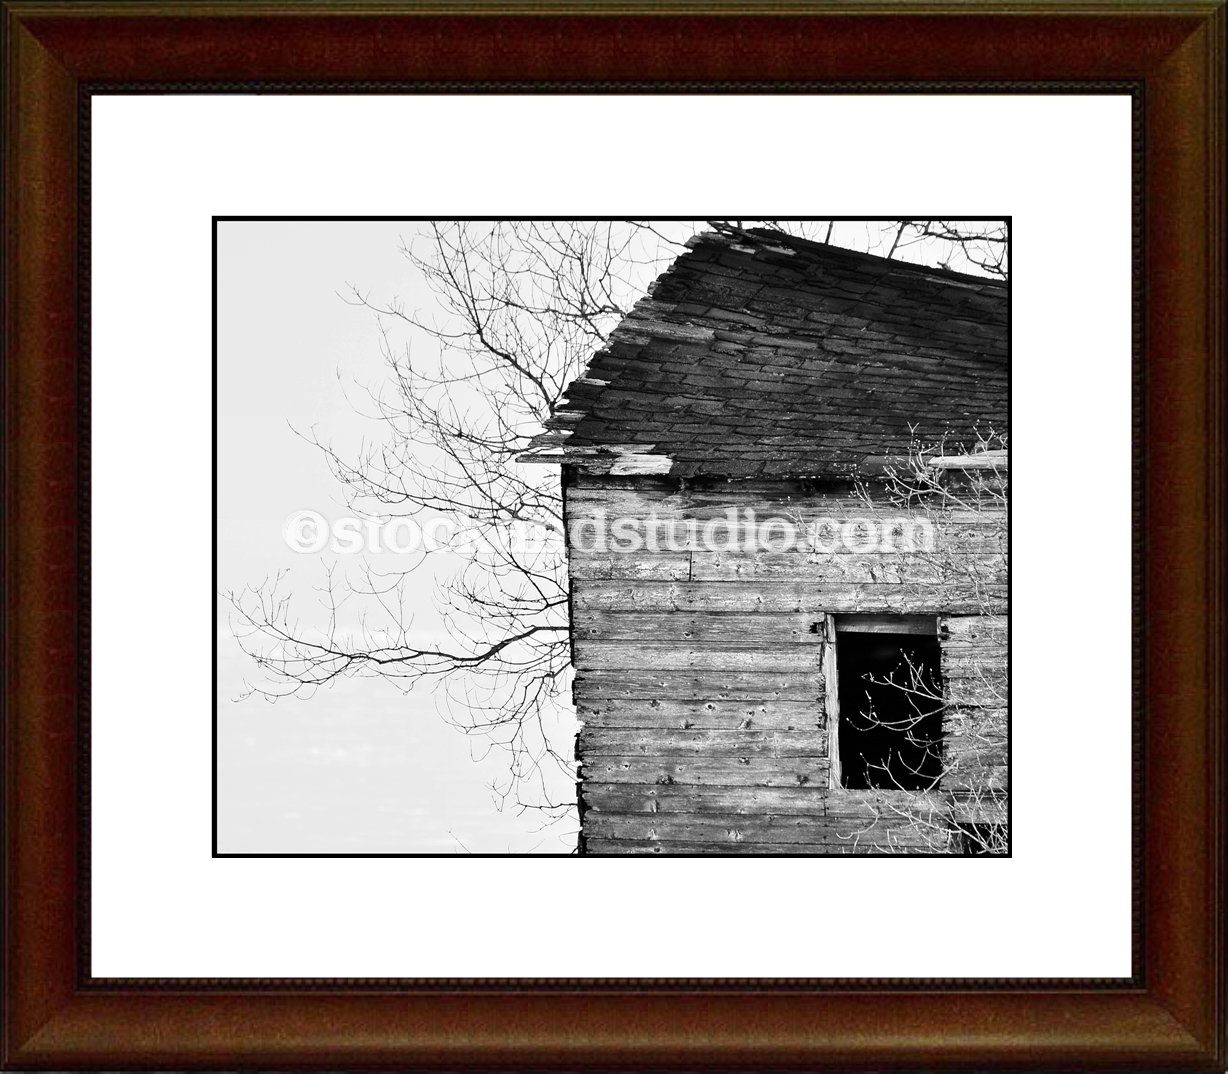 halfshed-bw-8X10-framed